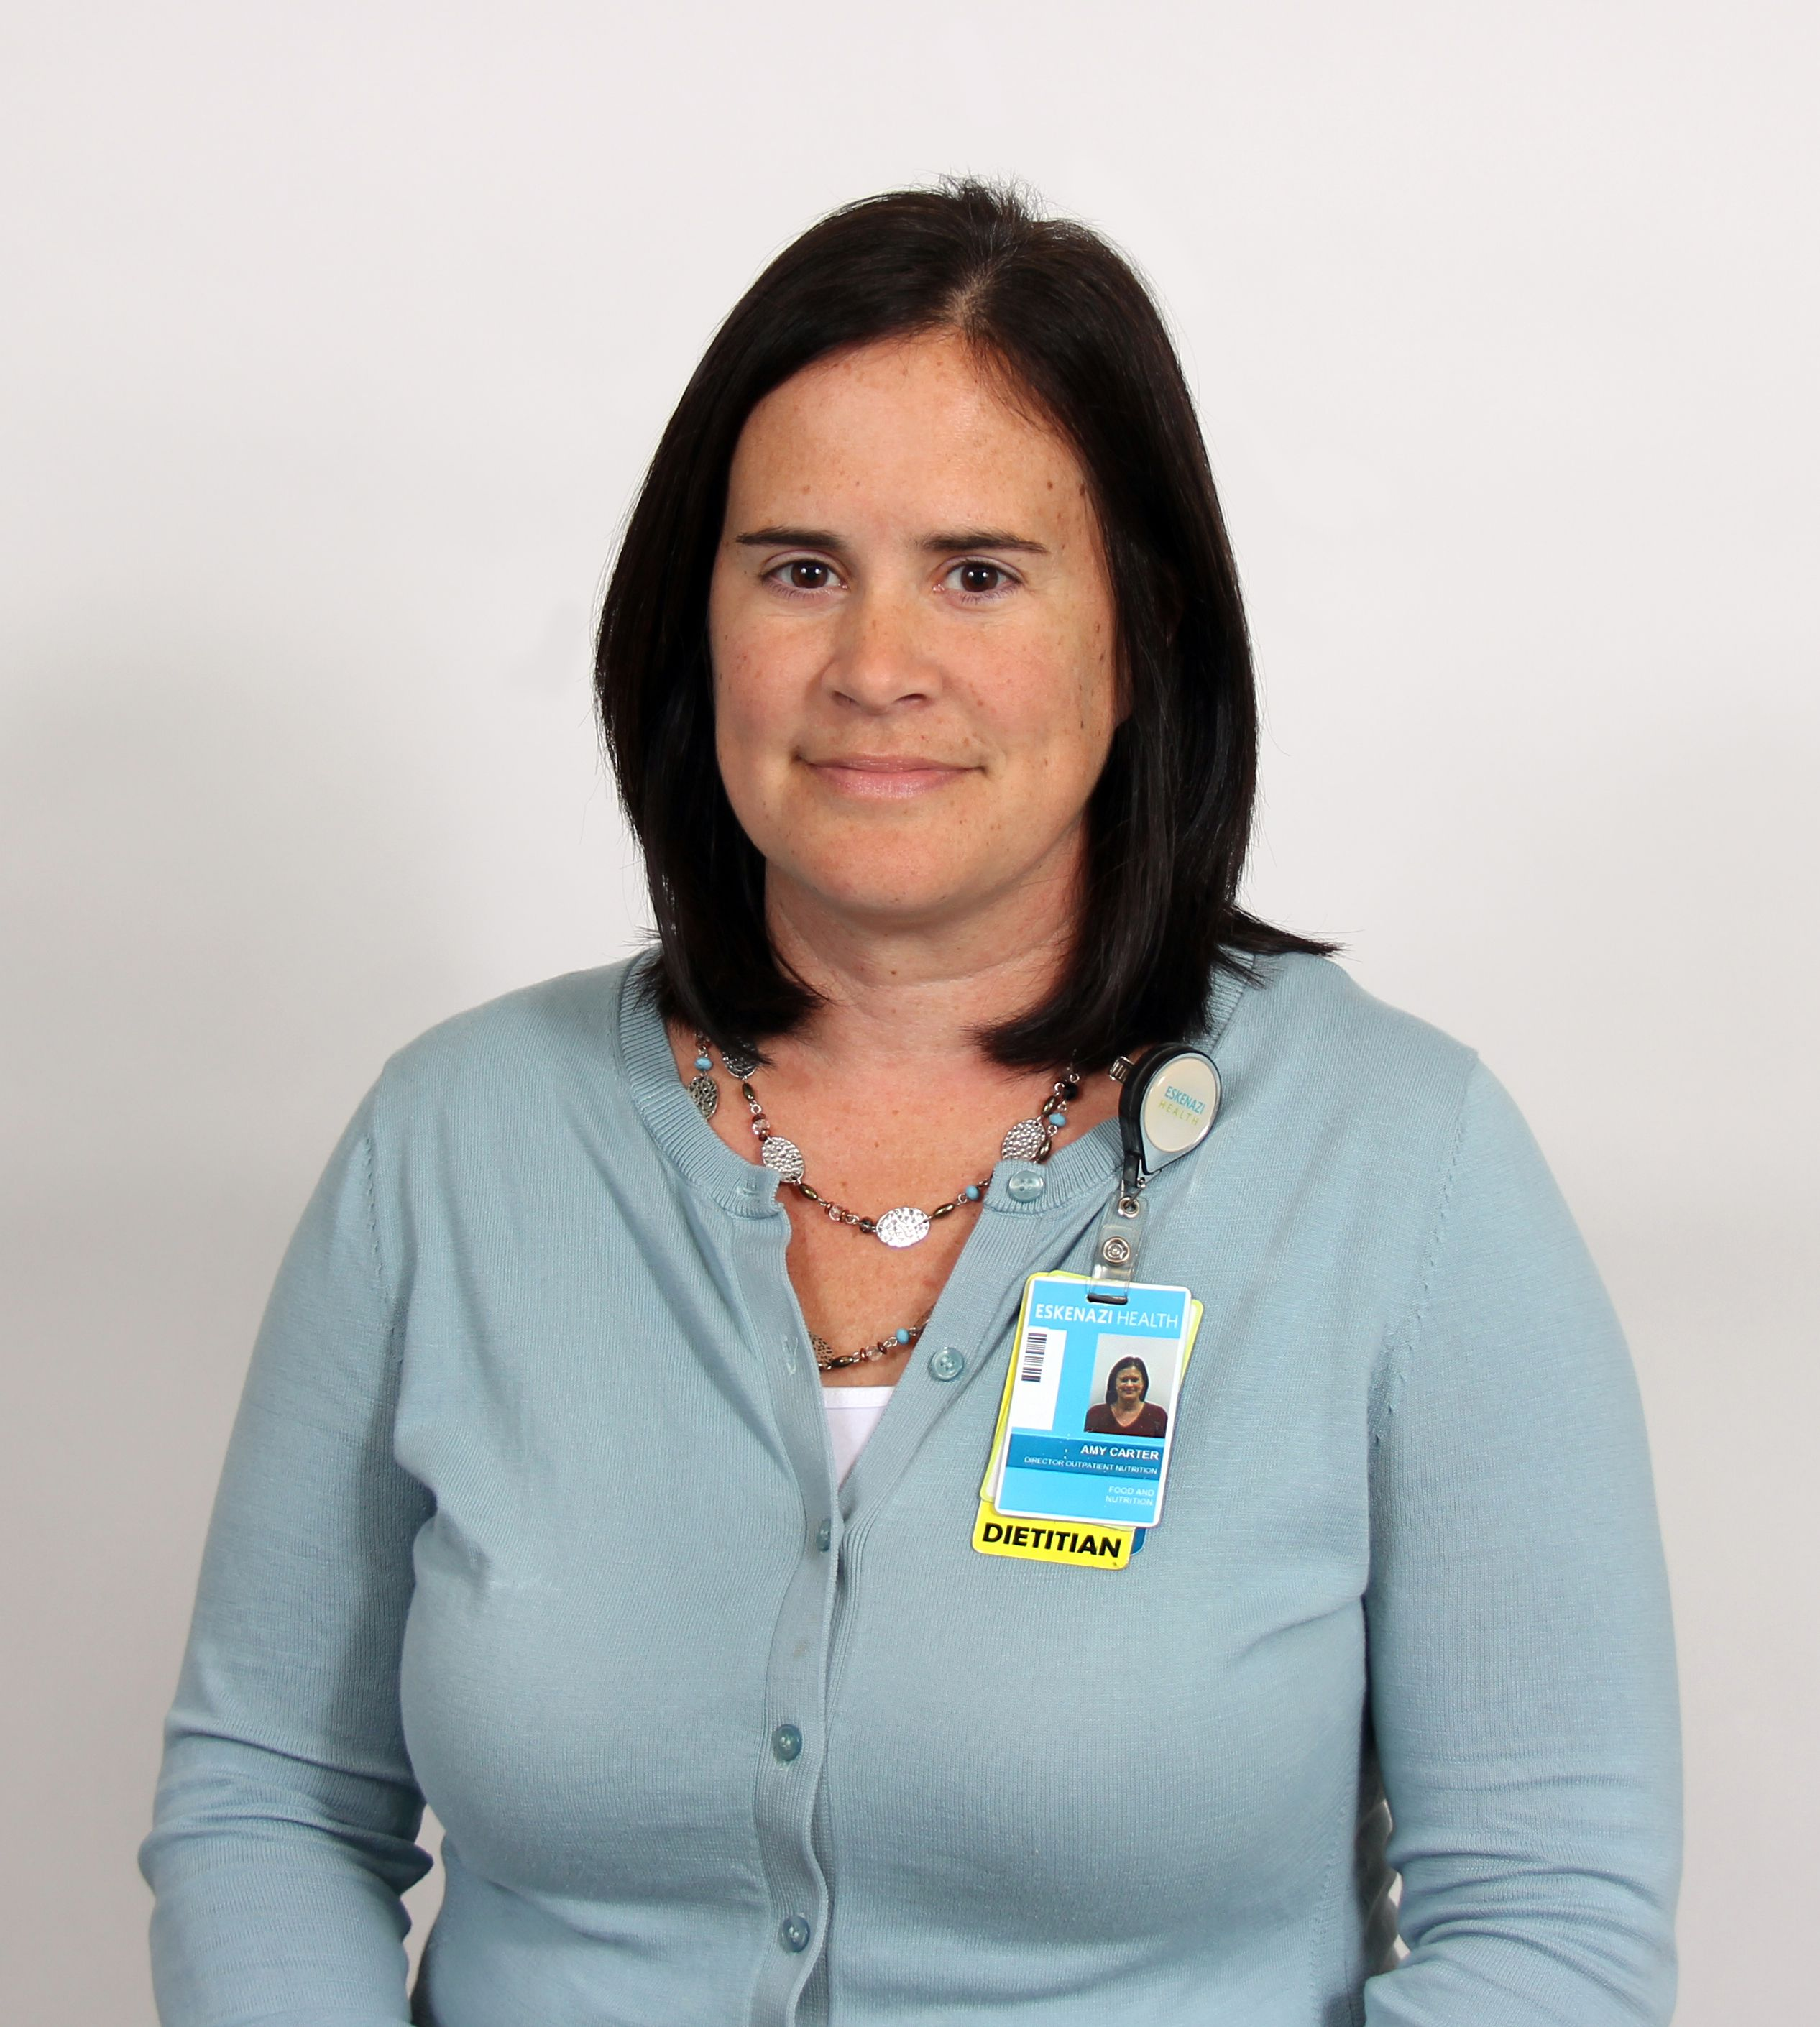 Congratulations to Amy Carter, director of Outpatient